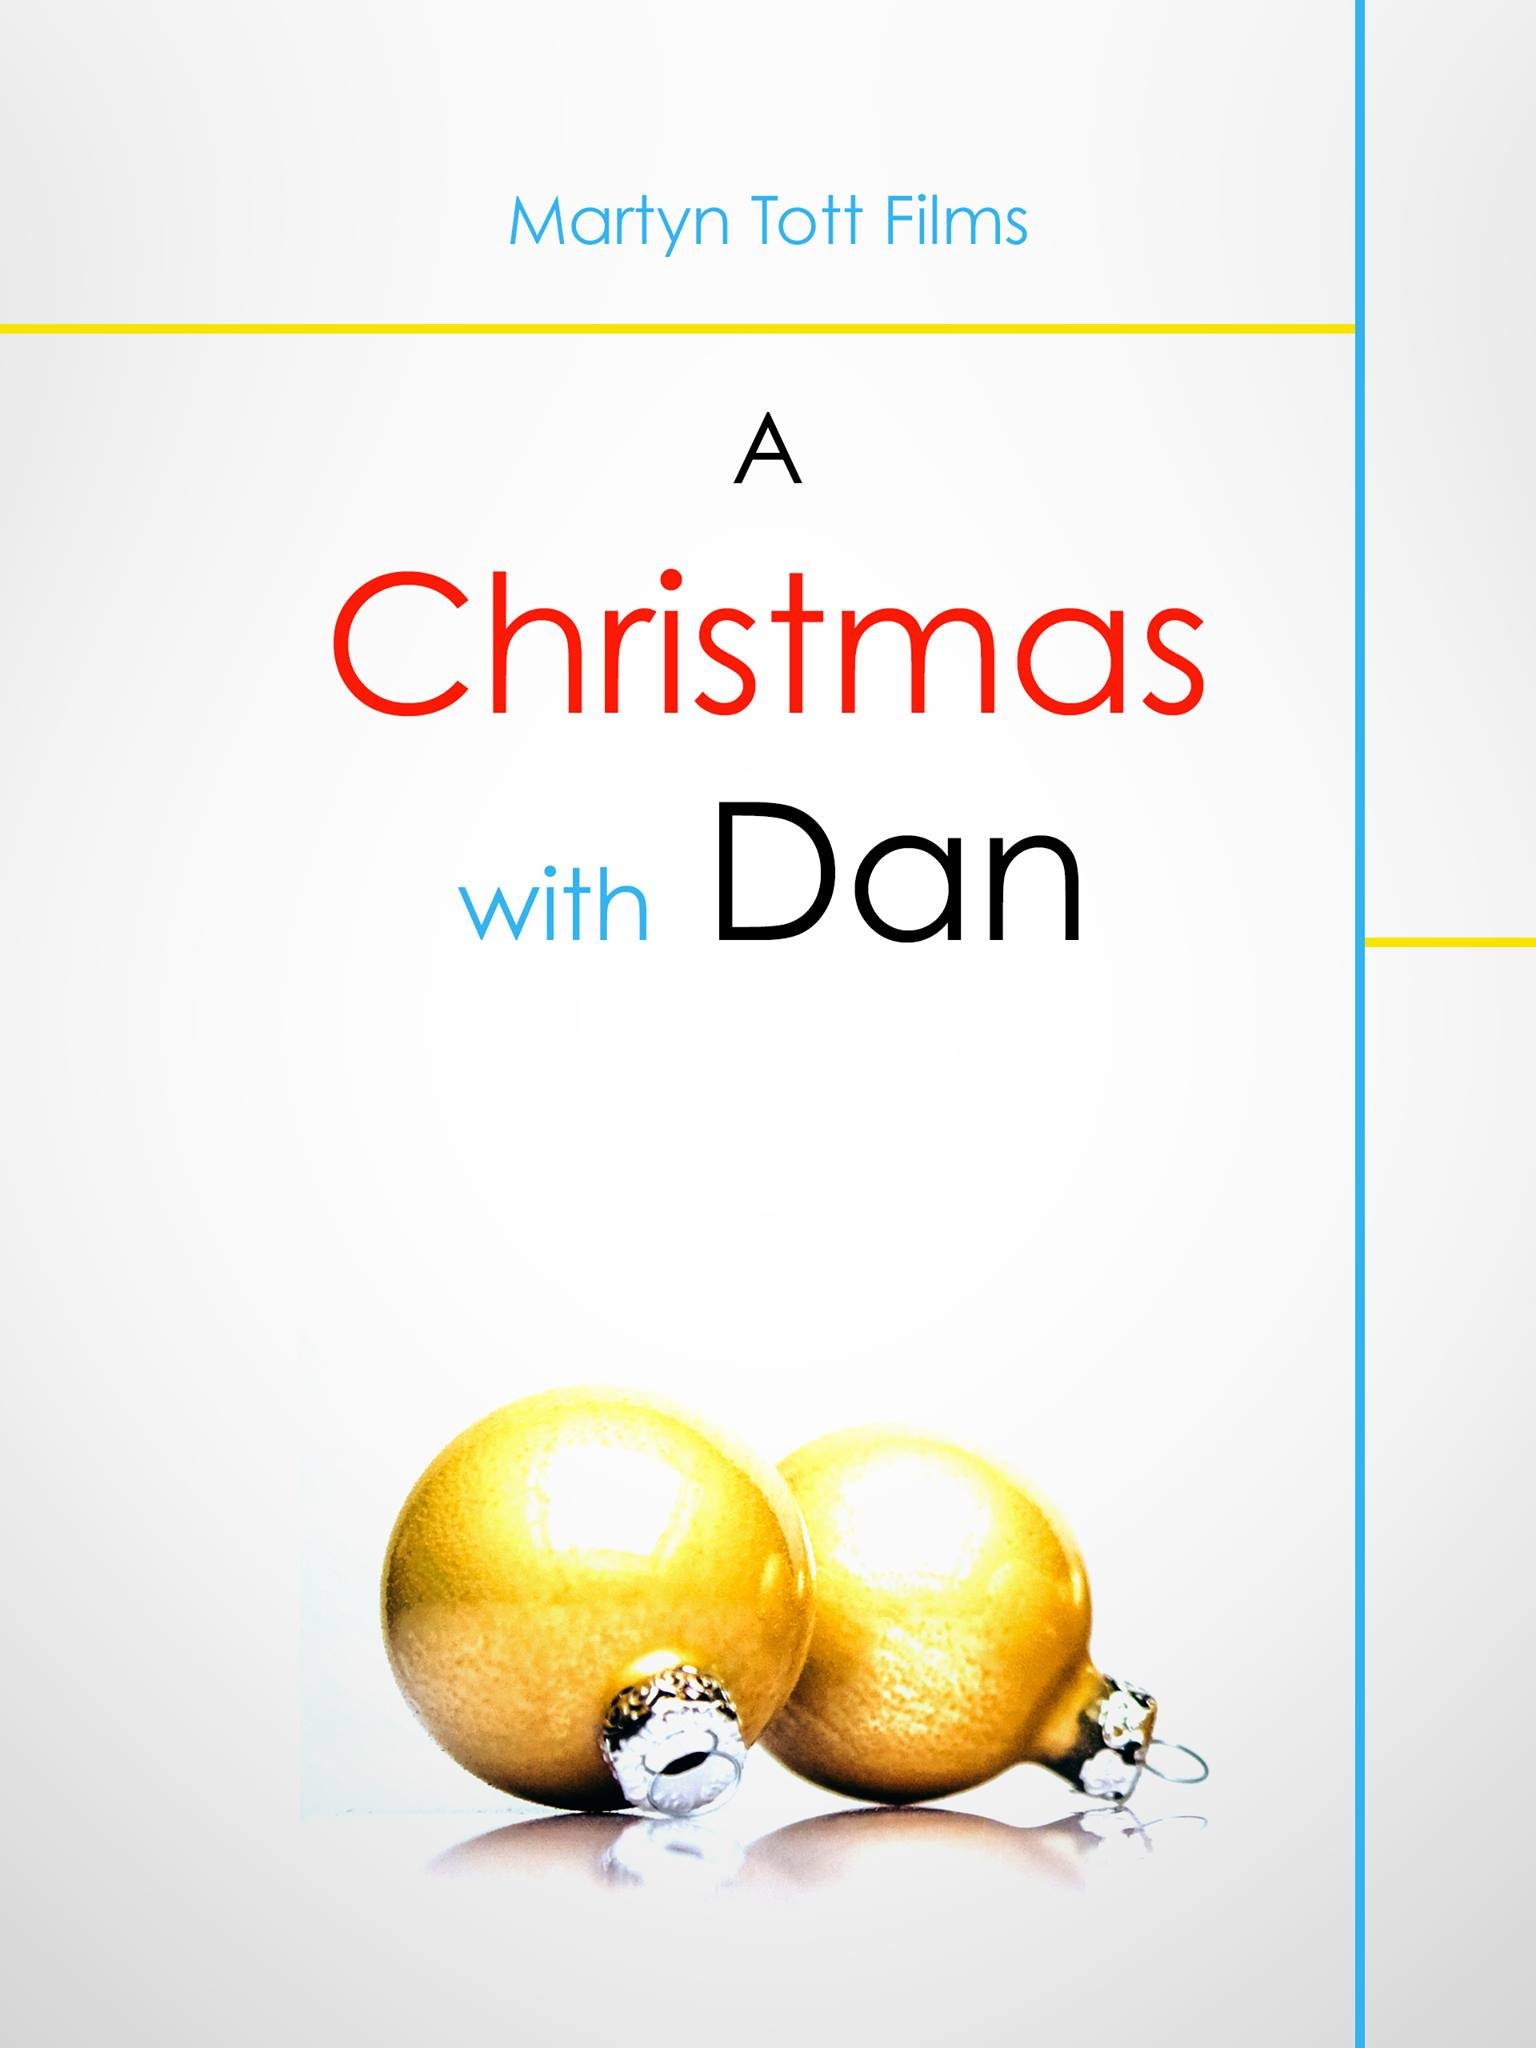 A Christmas with Dan (2014) - IMDb